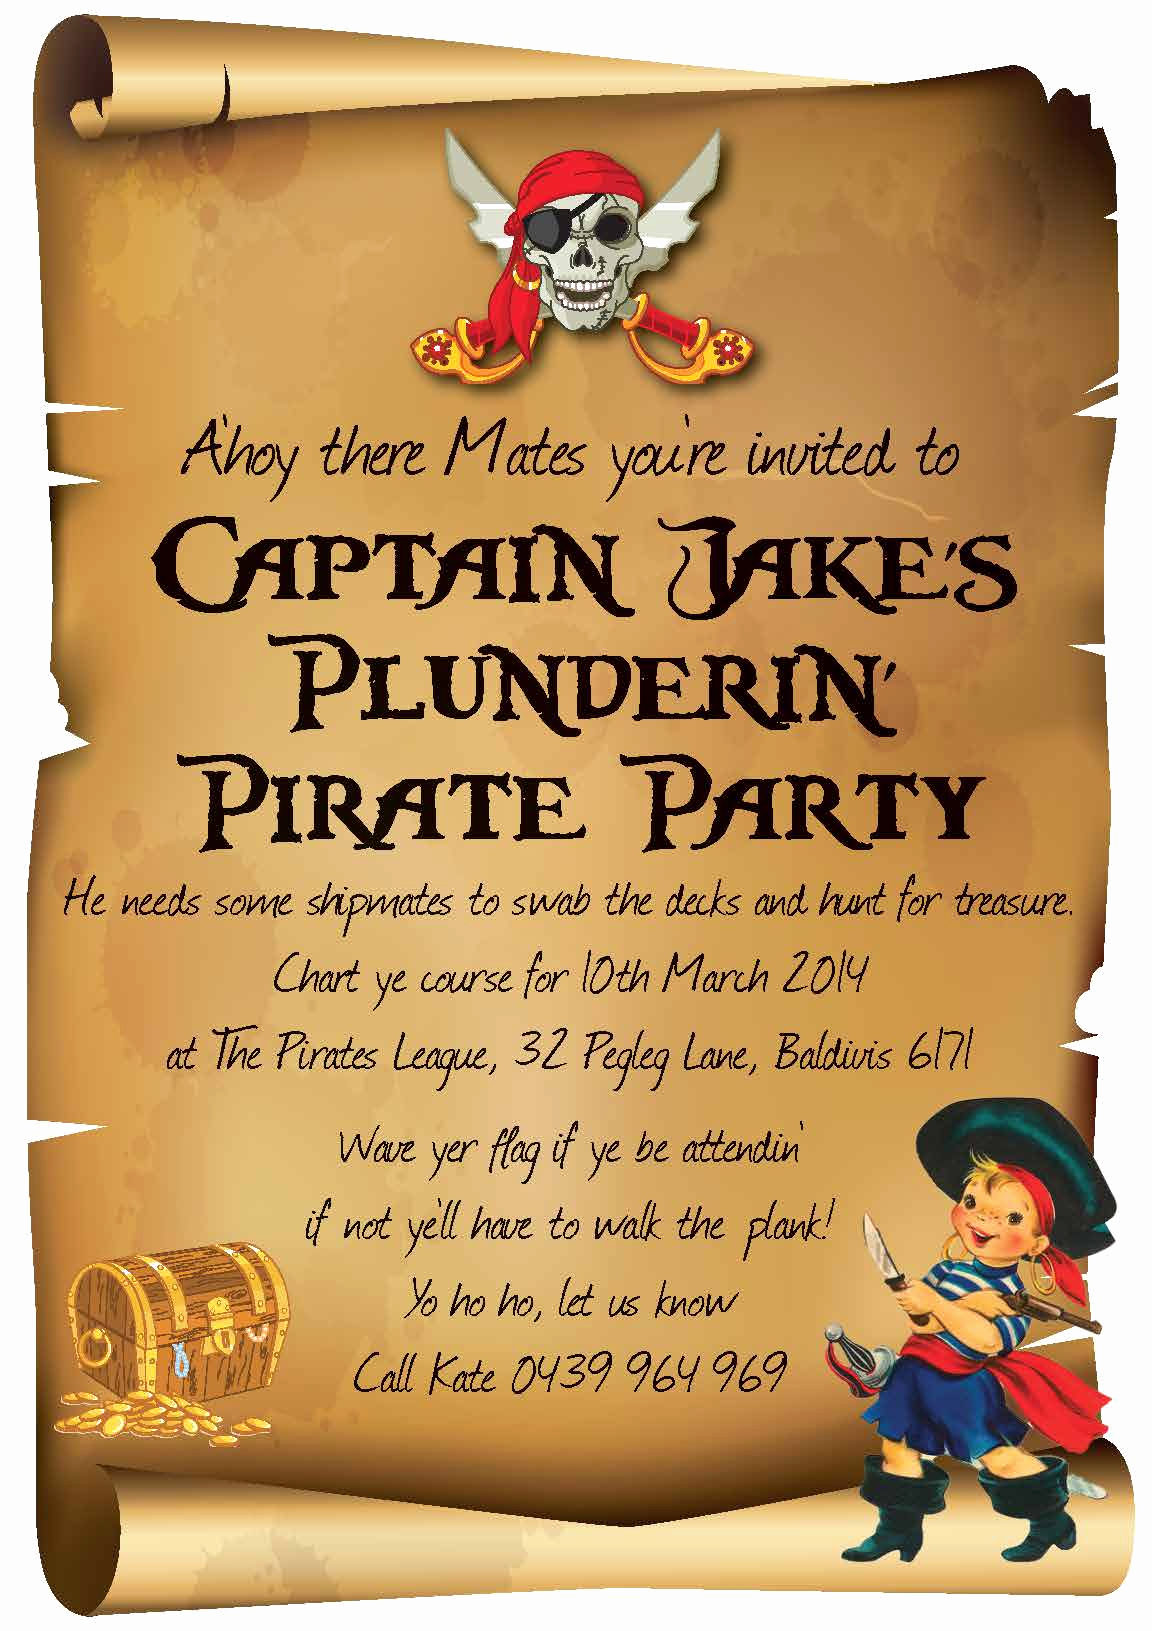 Pirate Party Invitation Wording New Plunderin' Pirates